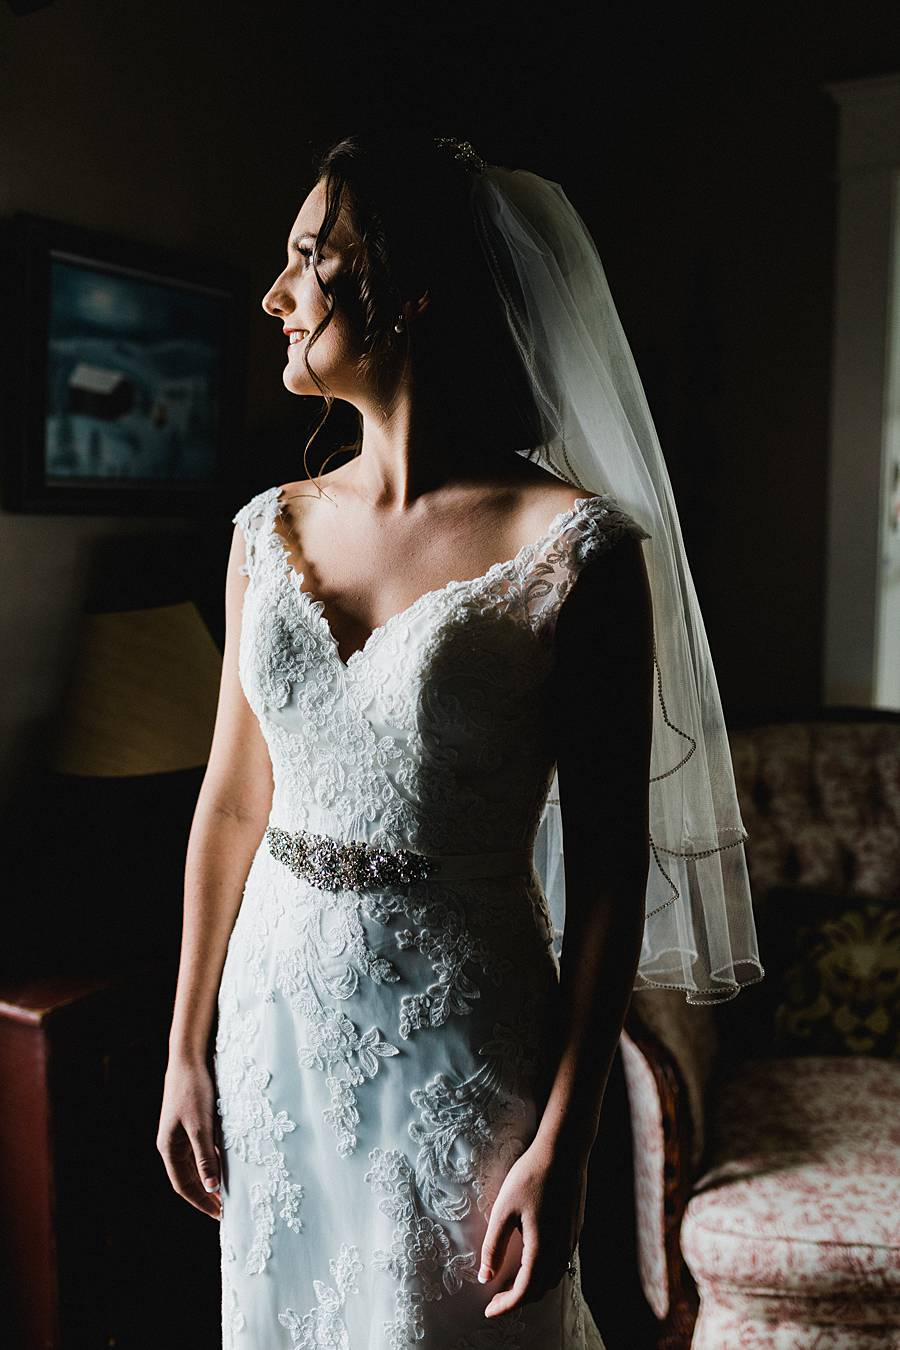 julia ryan kentucky farm wedding 233_web